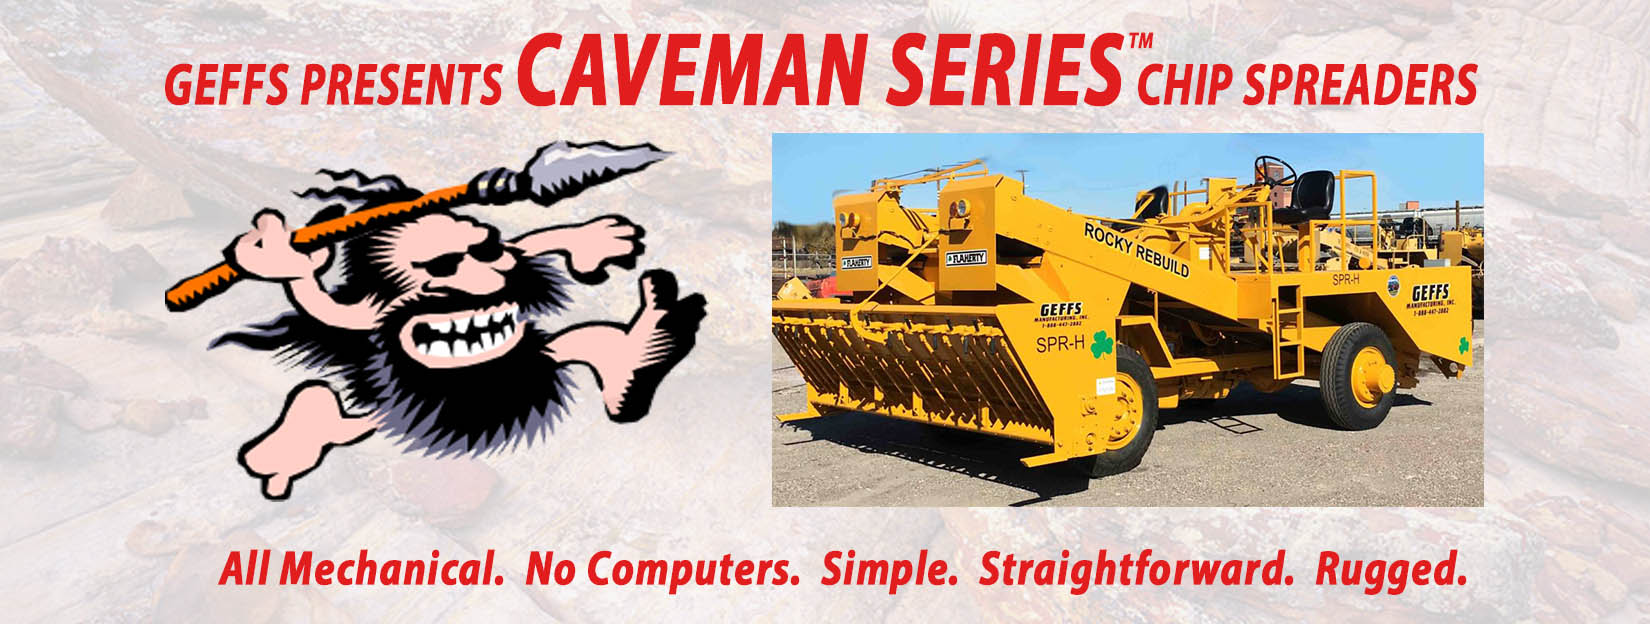 GEFFS Caveman TM Slider